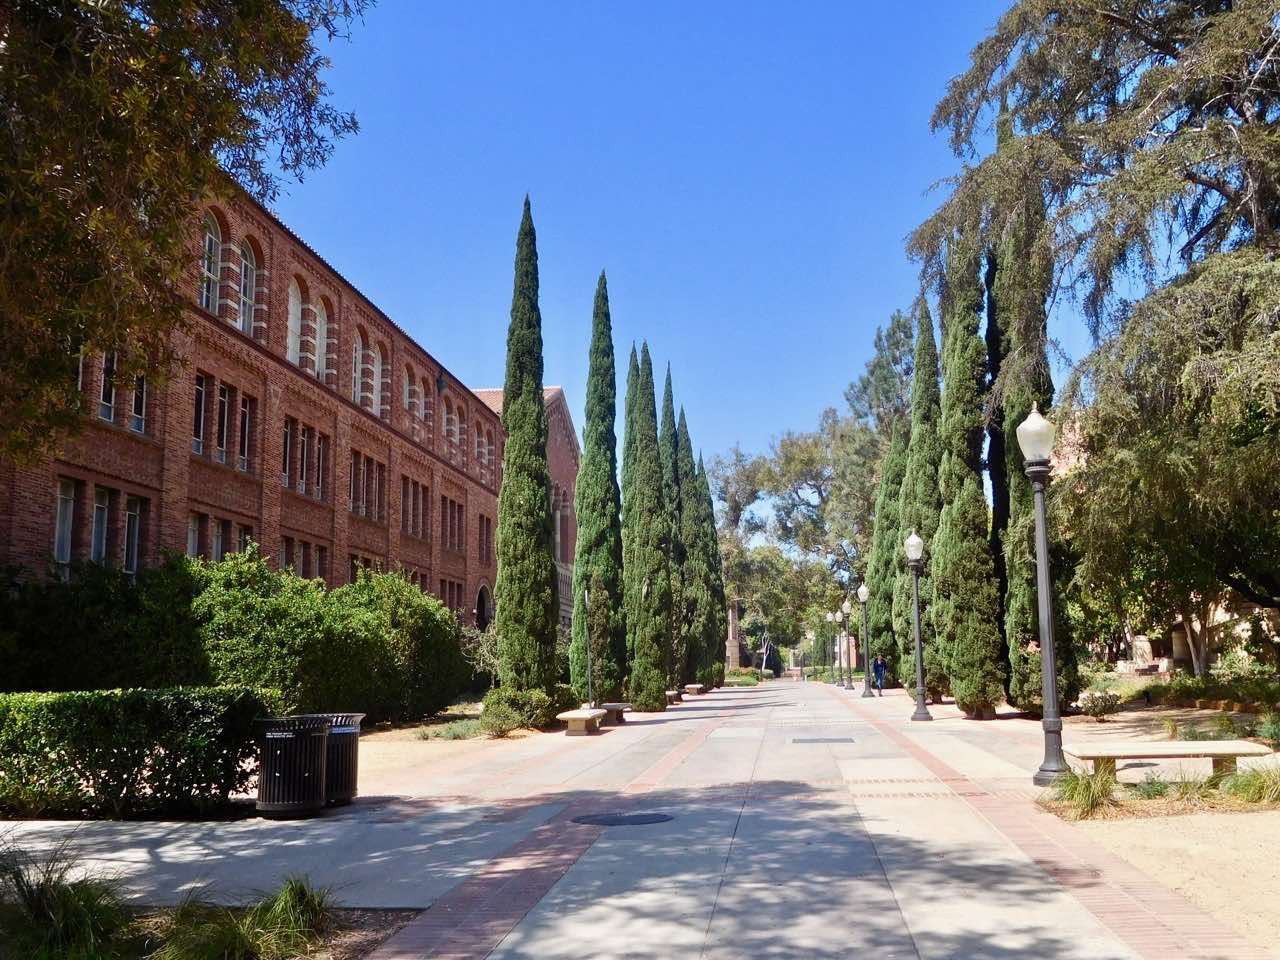 3 Days in L.A. - UCLA Campus (1)